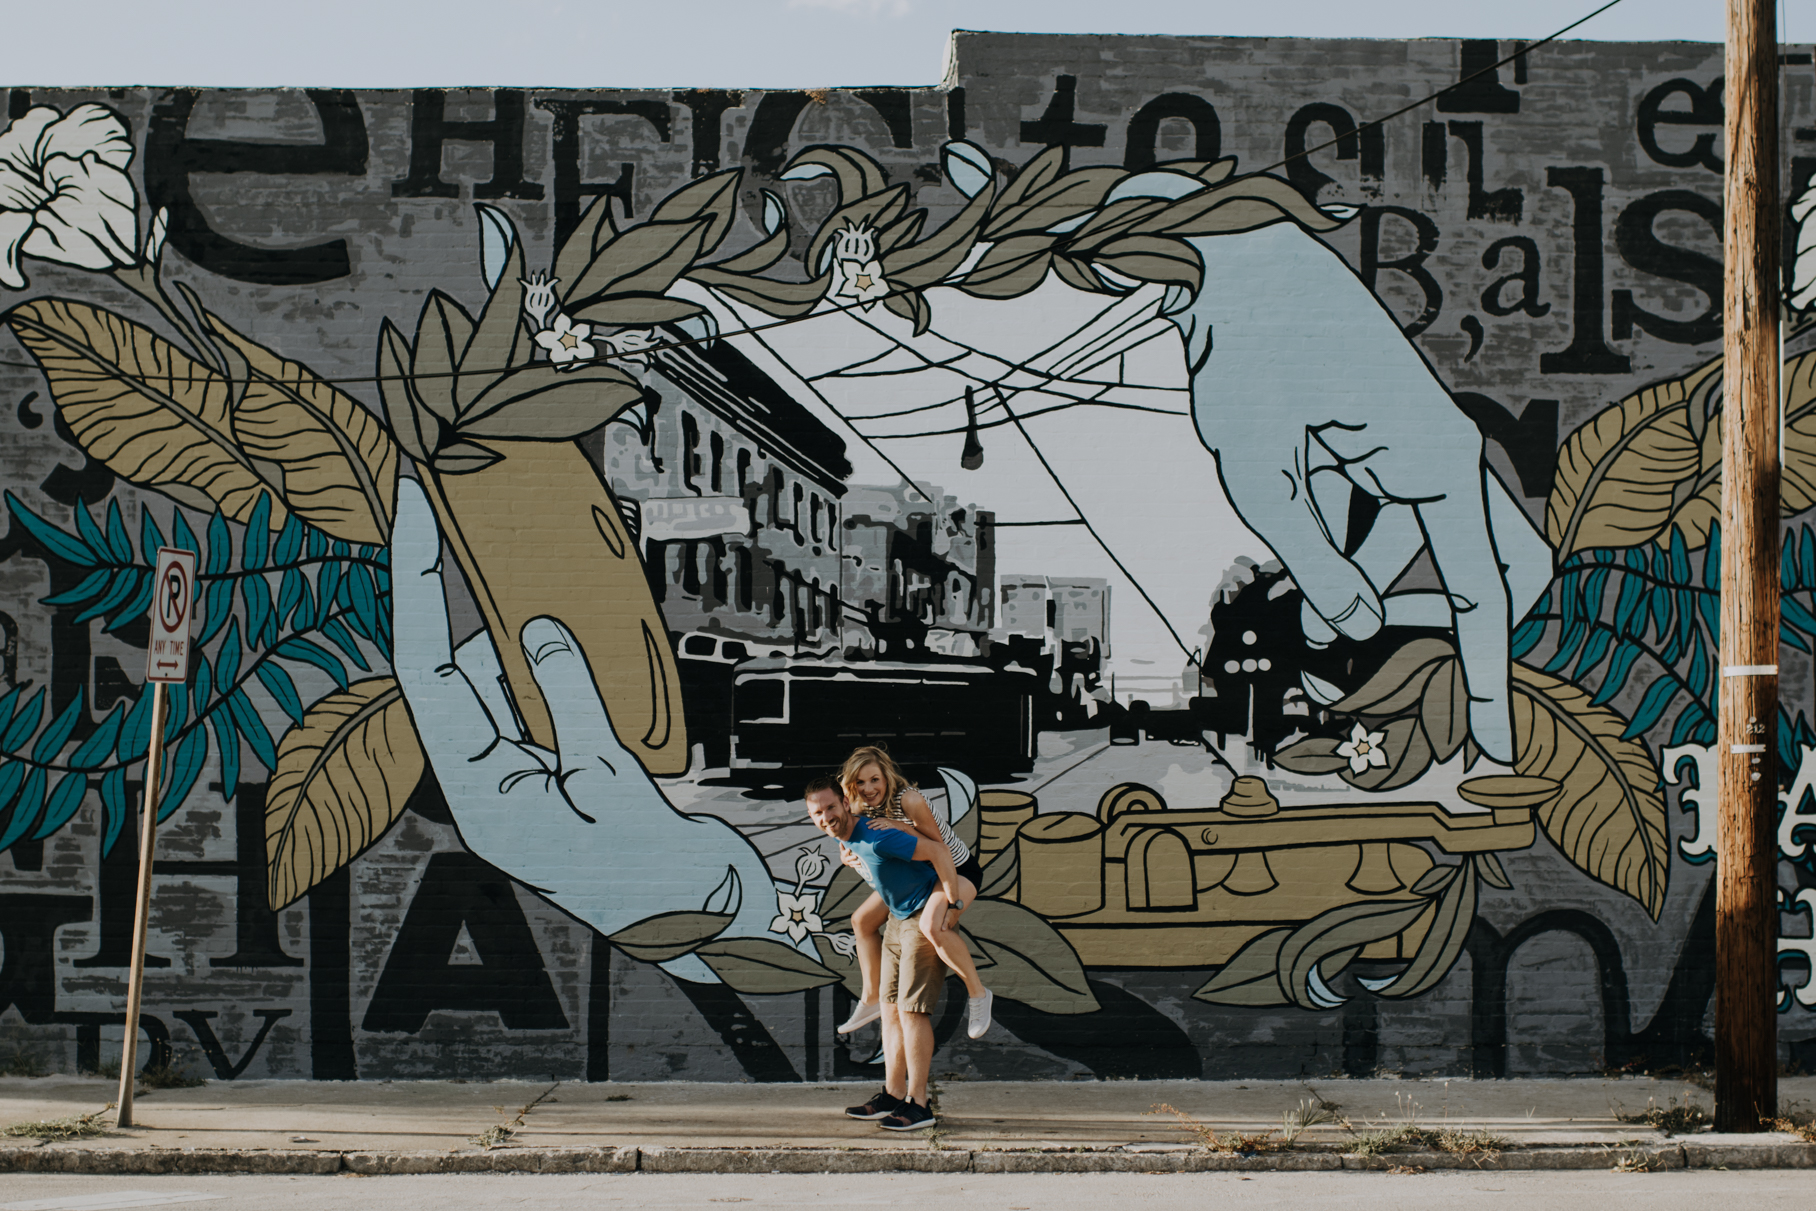 tampa mural shoot   freehearted film co   tampa wedding photography   tampa wedding photographer